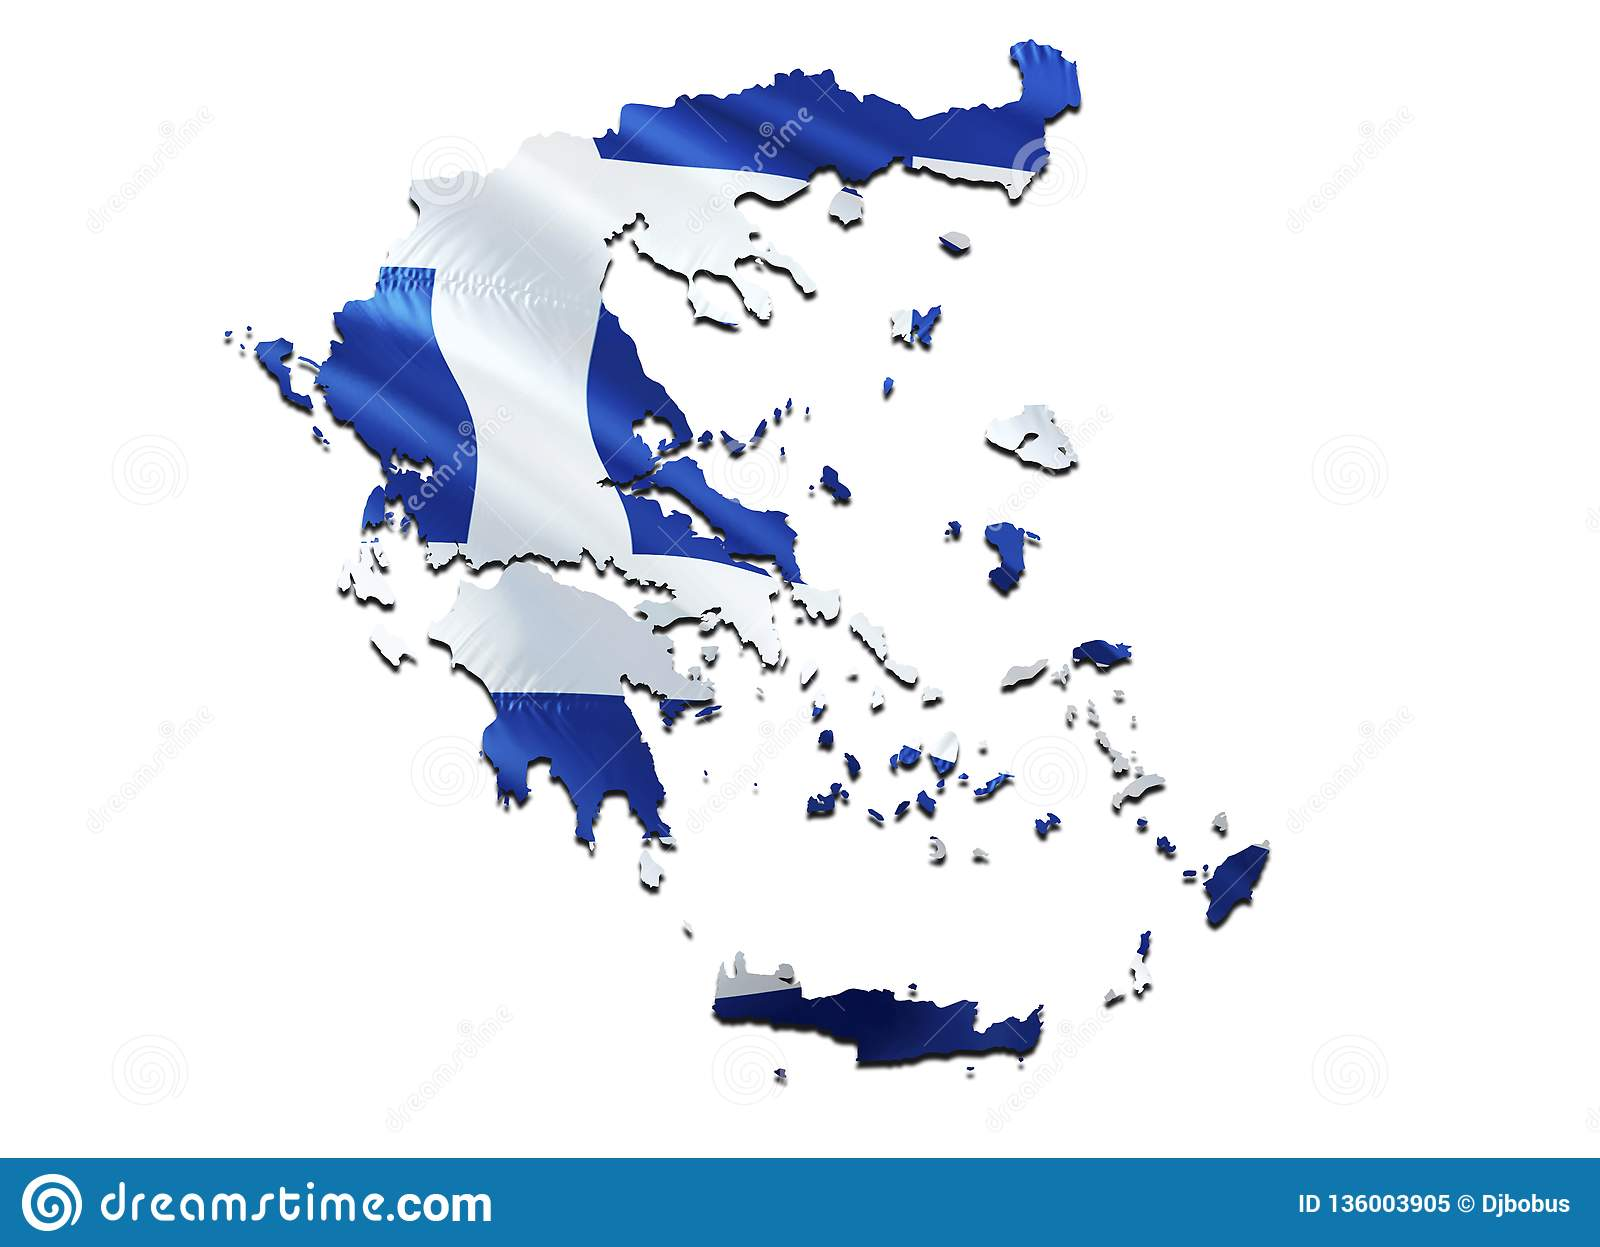 Flag Map of Greece. 3D rendering Greece map and flag. The national symbol of Greece. National waving flag colorful concept 3D